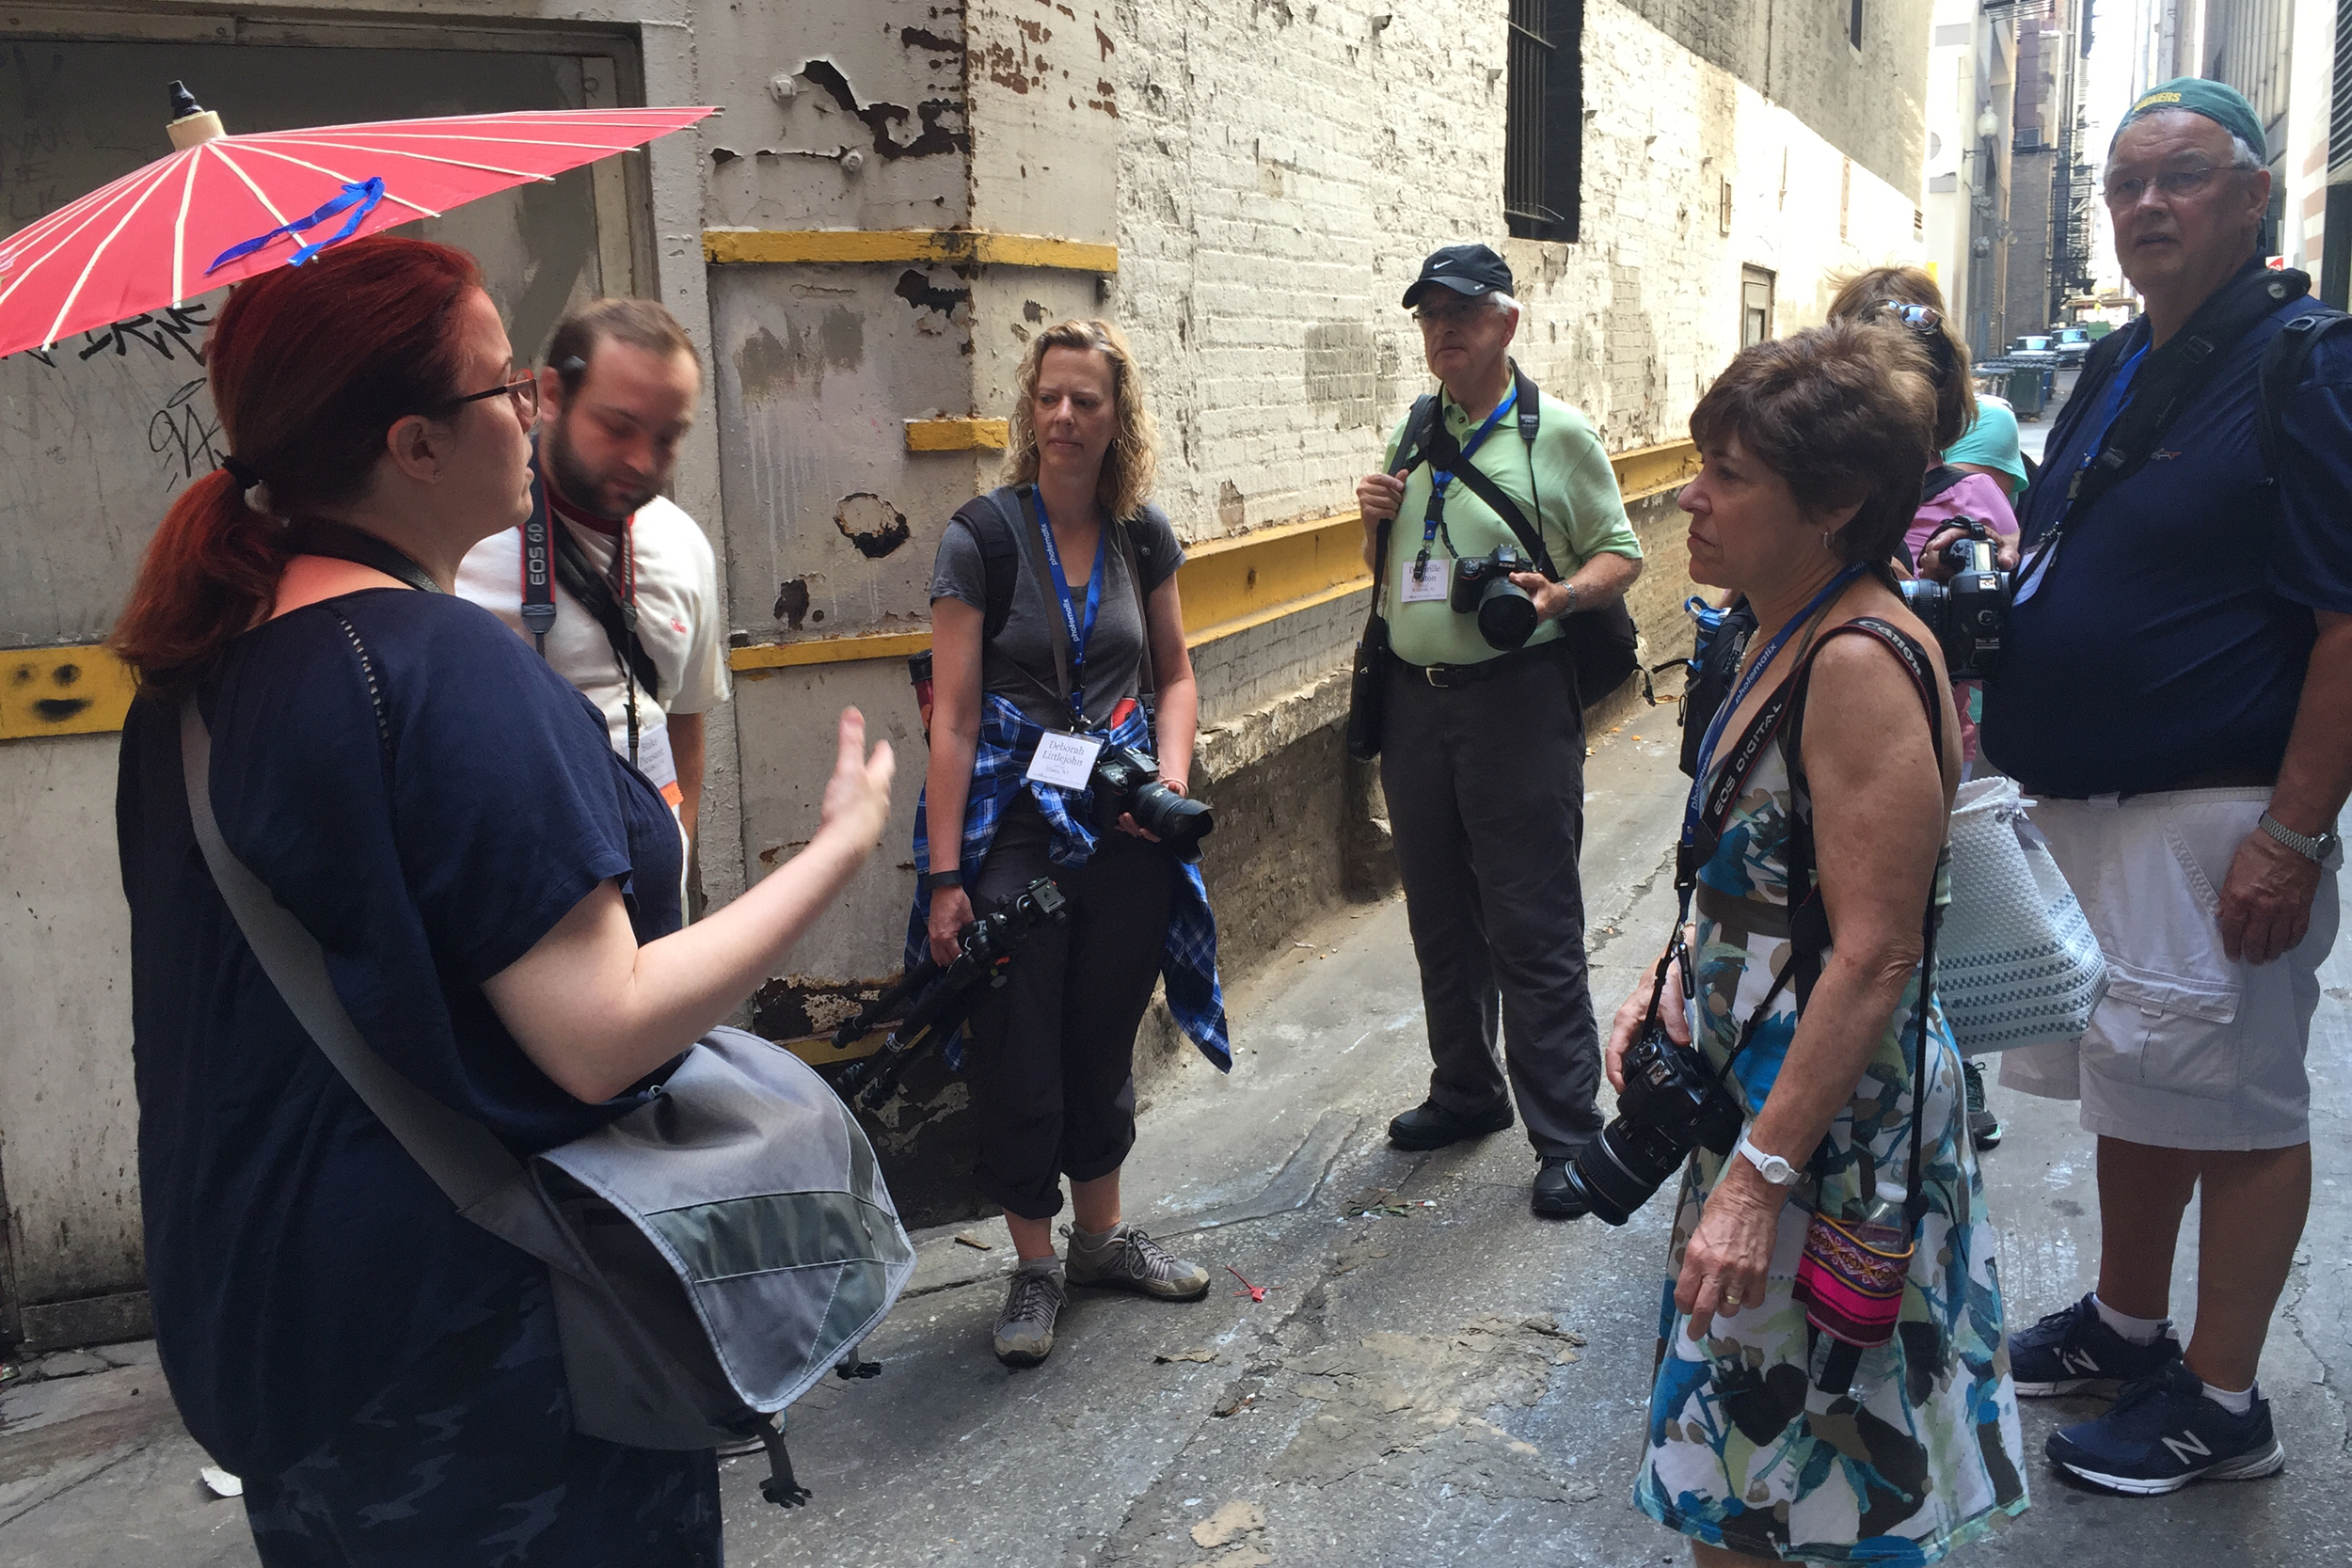 Molly Porter giving some tips on shooting strangers on the street.